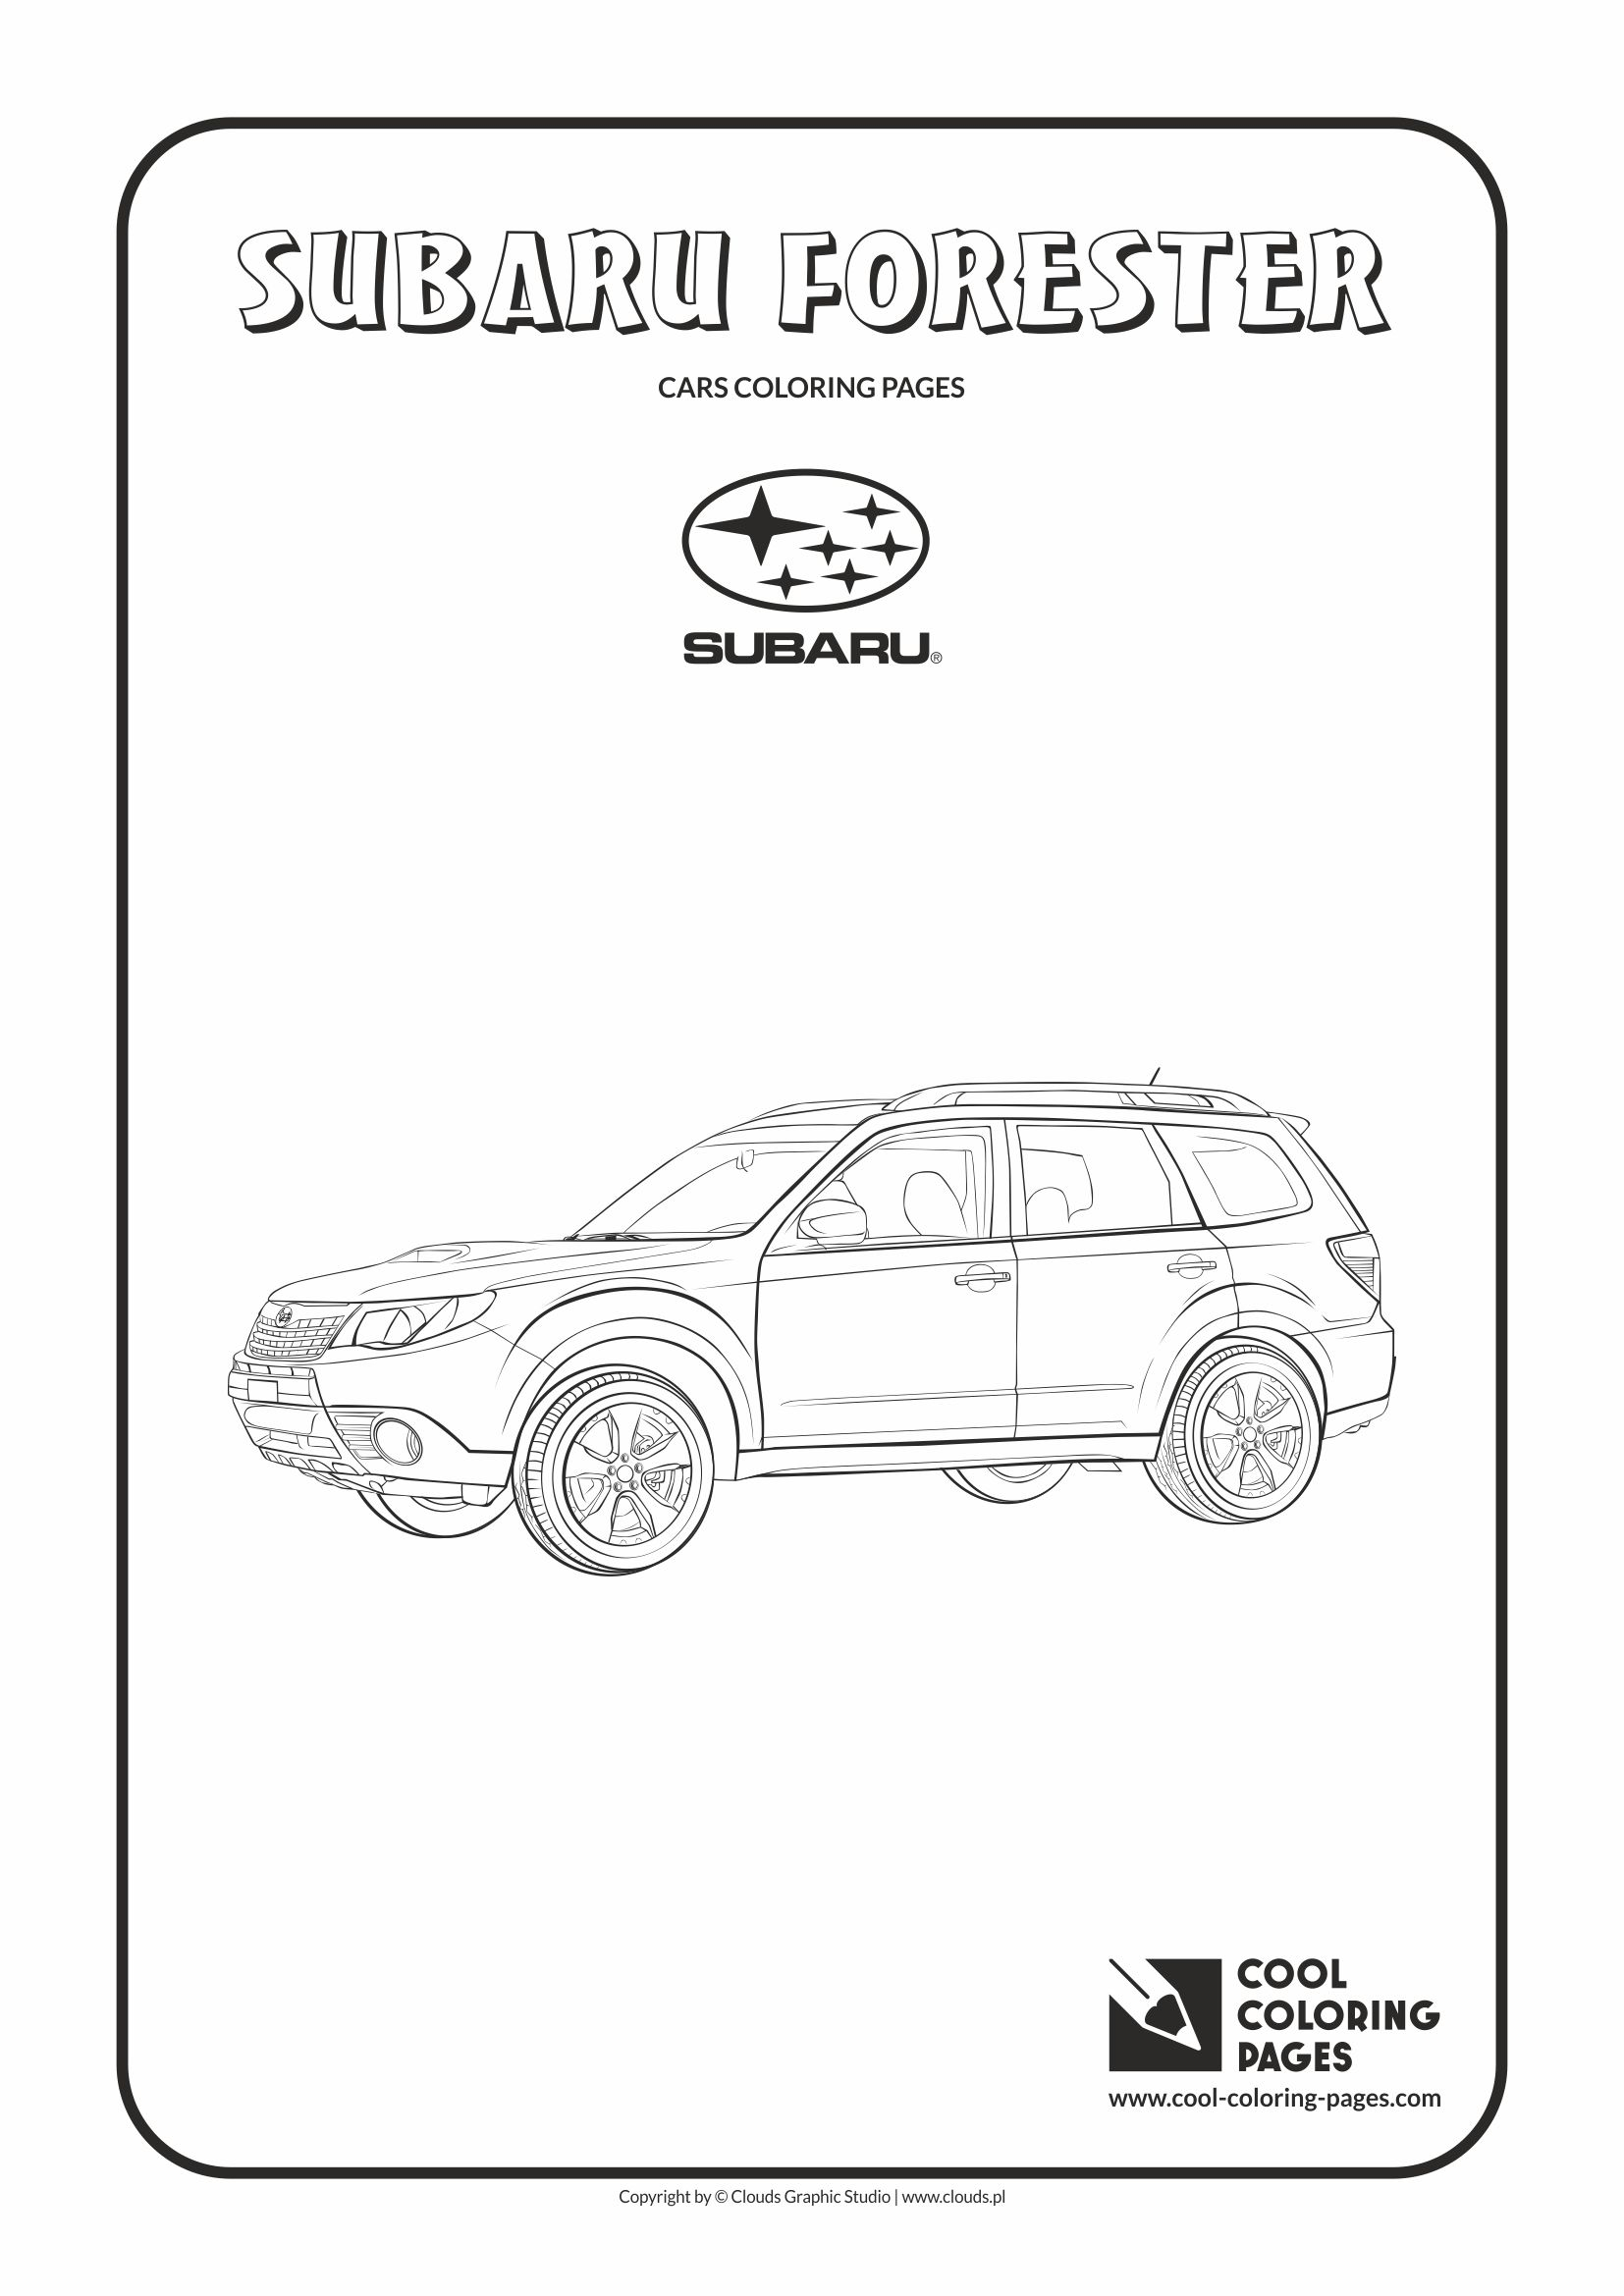 Cool Coloring Pages Cars coloring